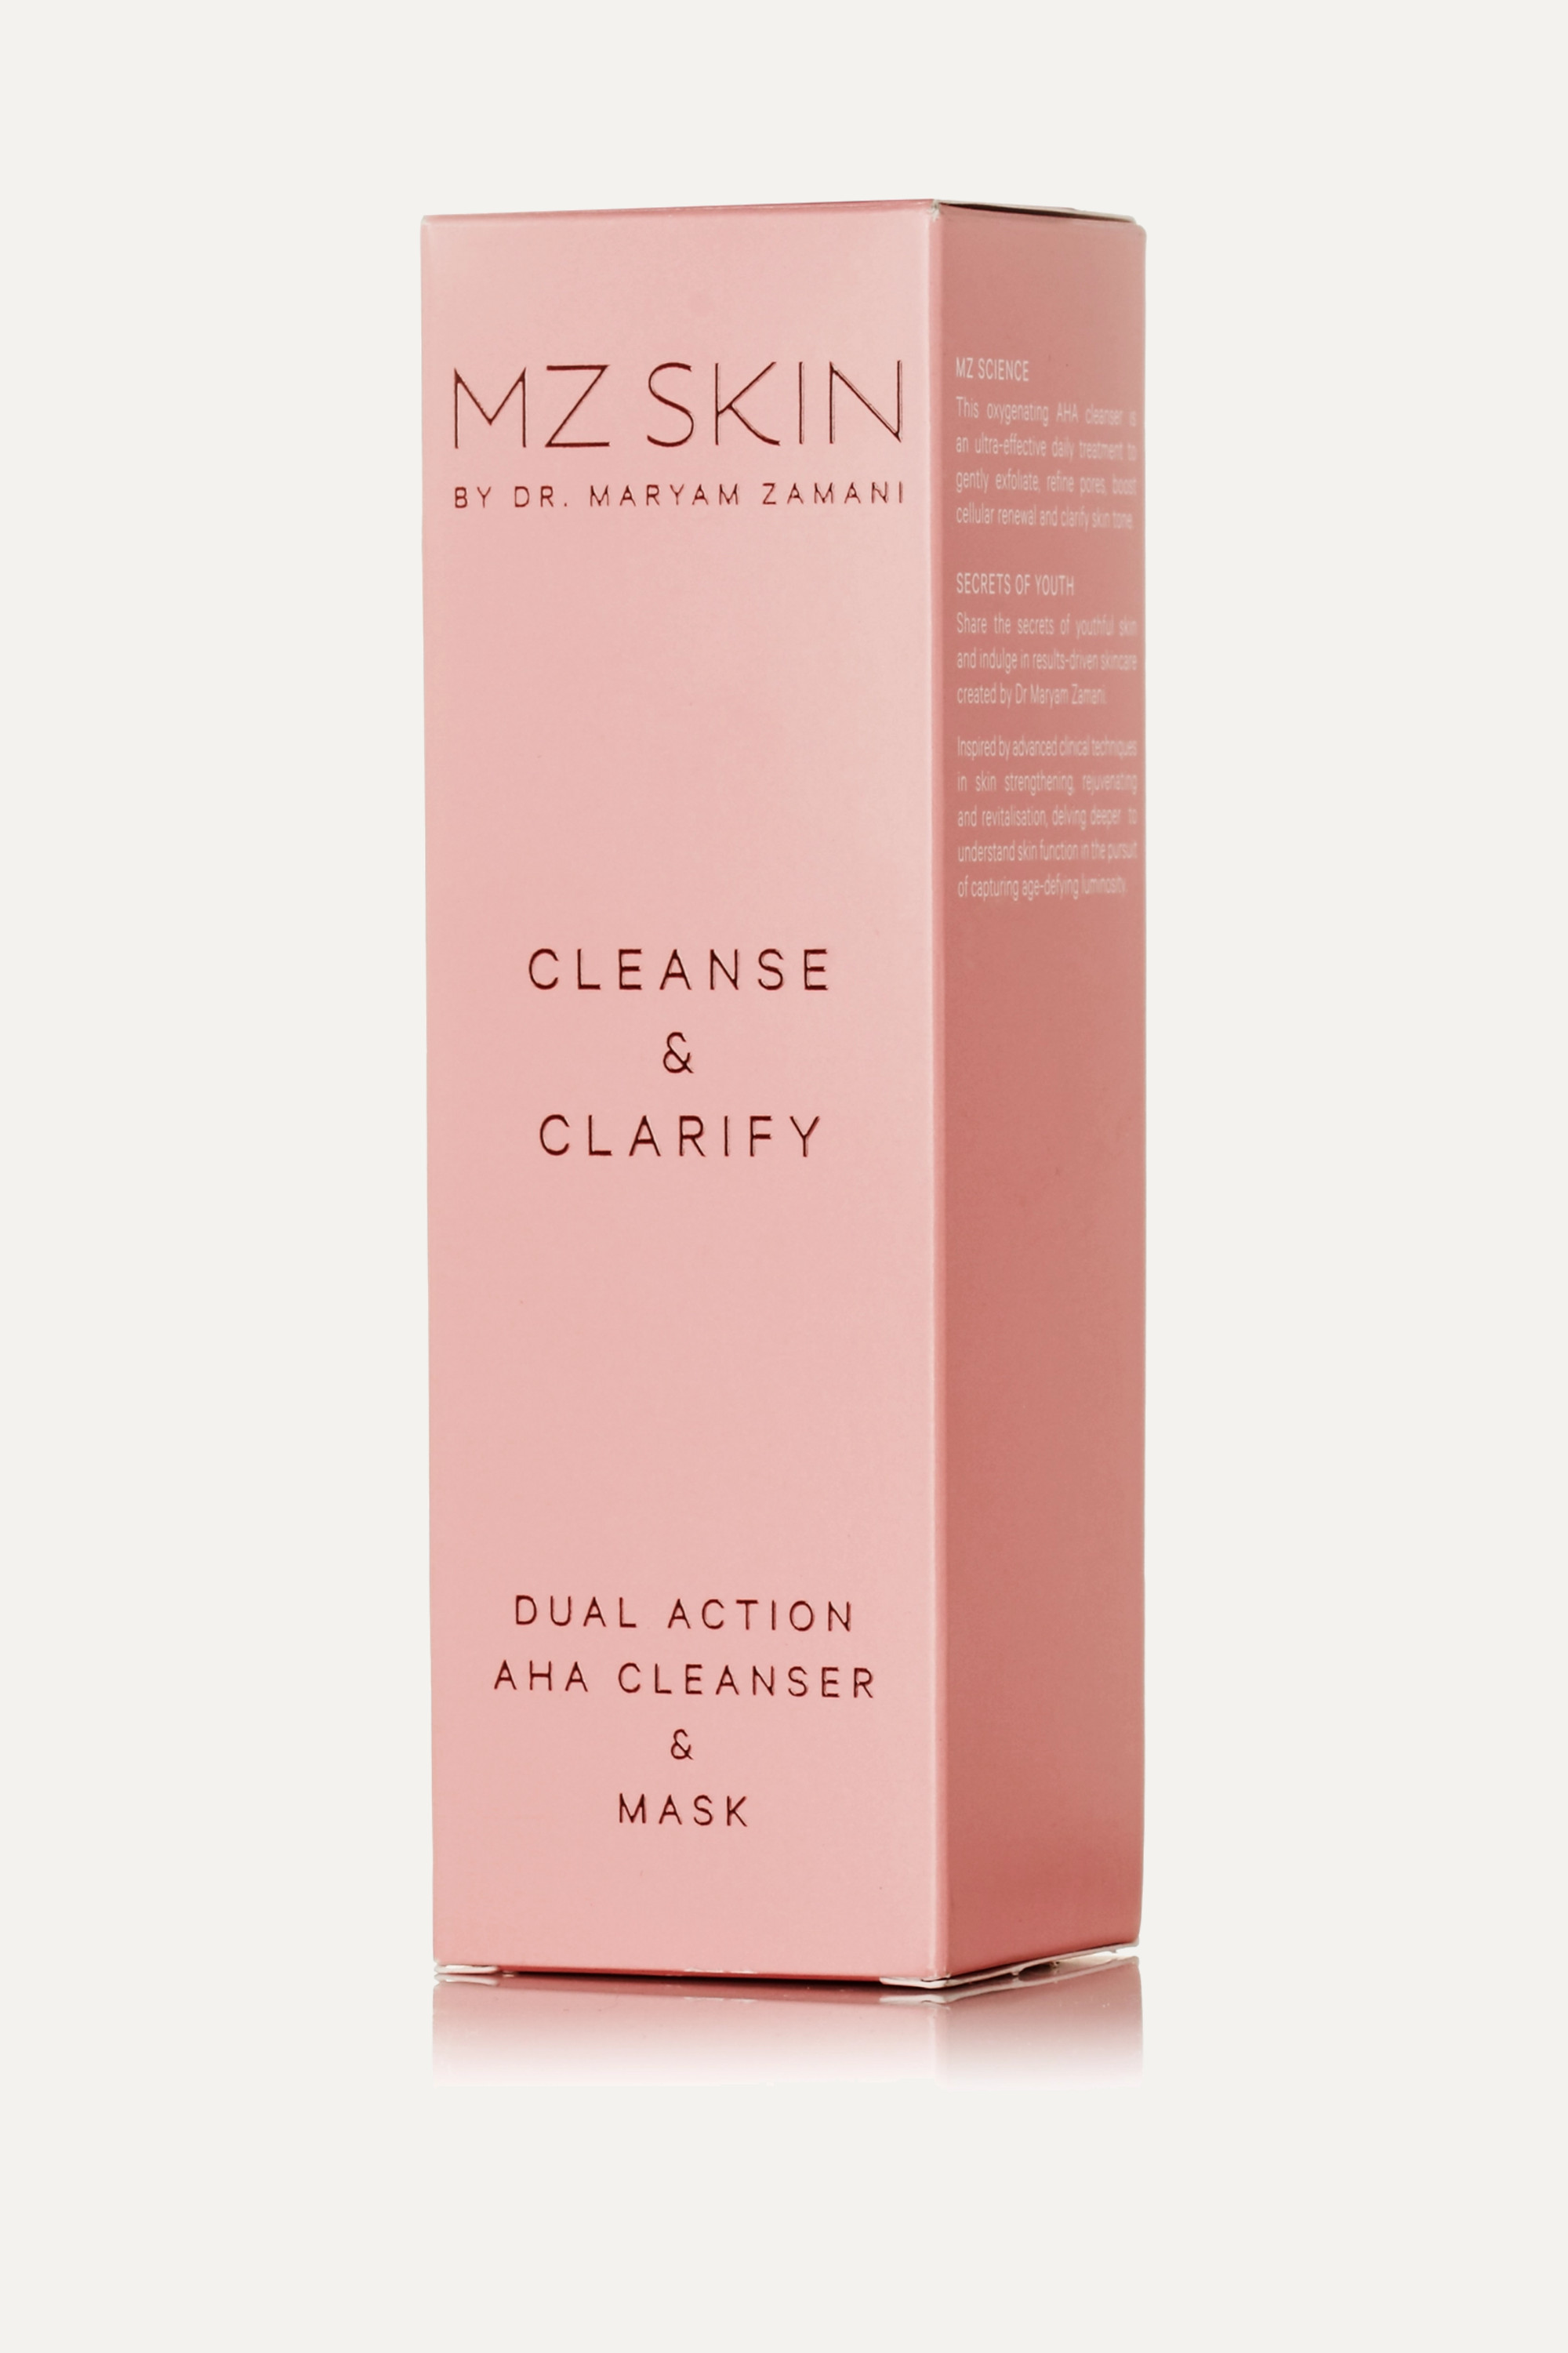 MZ Skin Cleanse & Clarify Dual Action AHA Cleanser & Mask, 100 ml – Cleanser